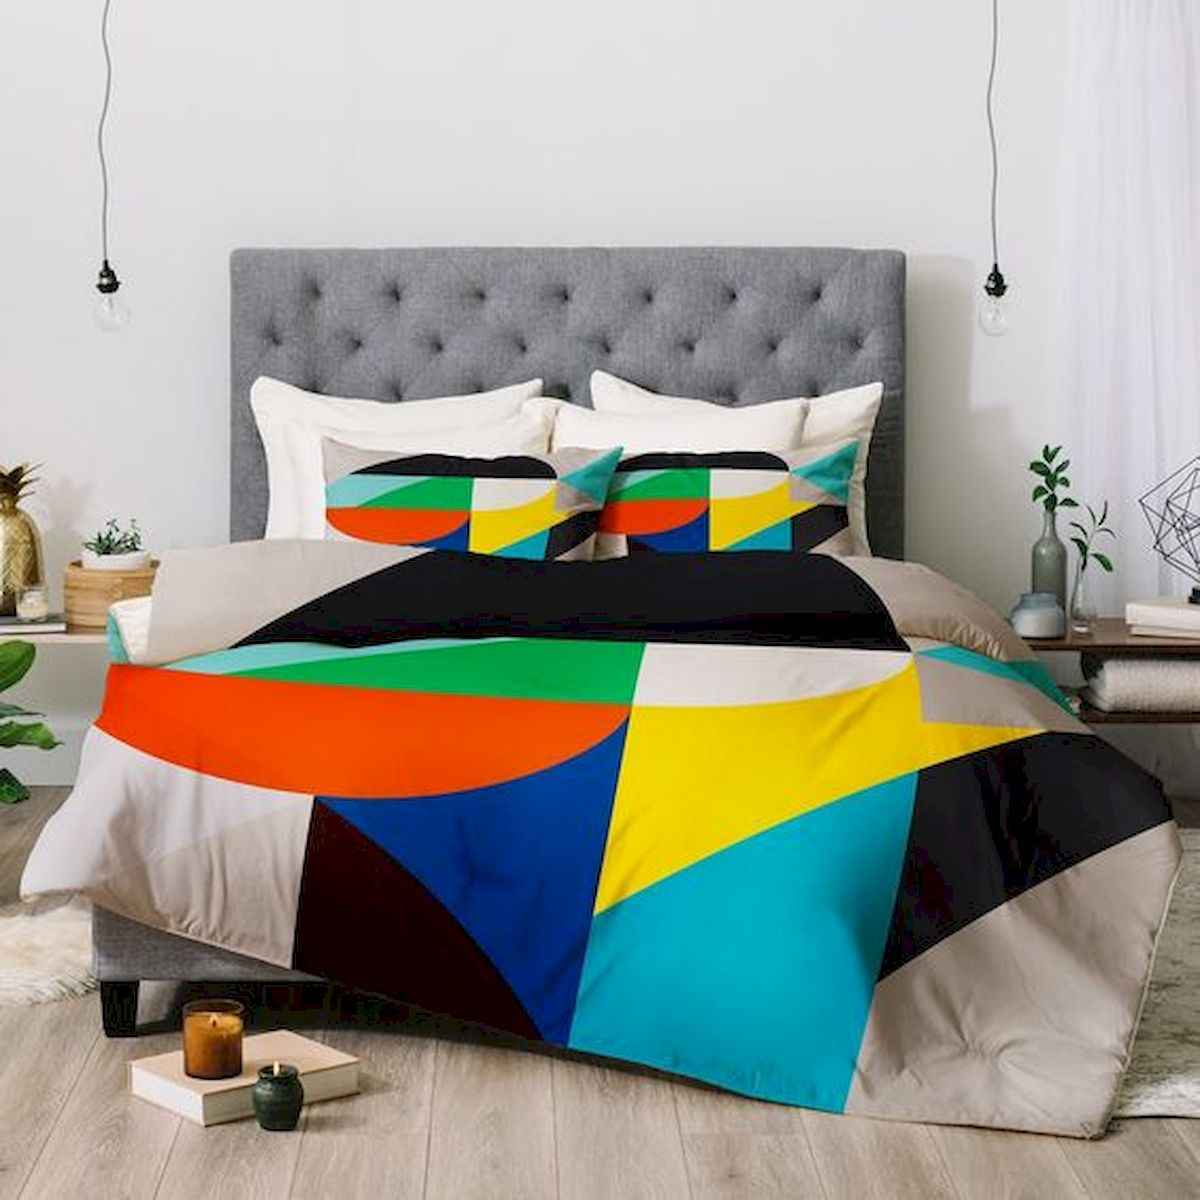 70+ Amazing Colorful Bedroom Decor Ideas And Remodel for Summer Project (63)